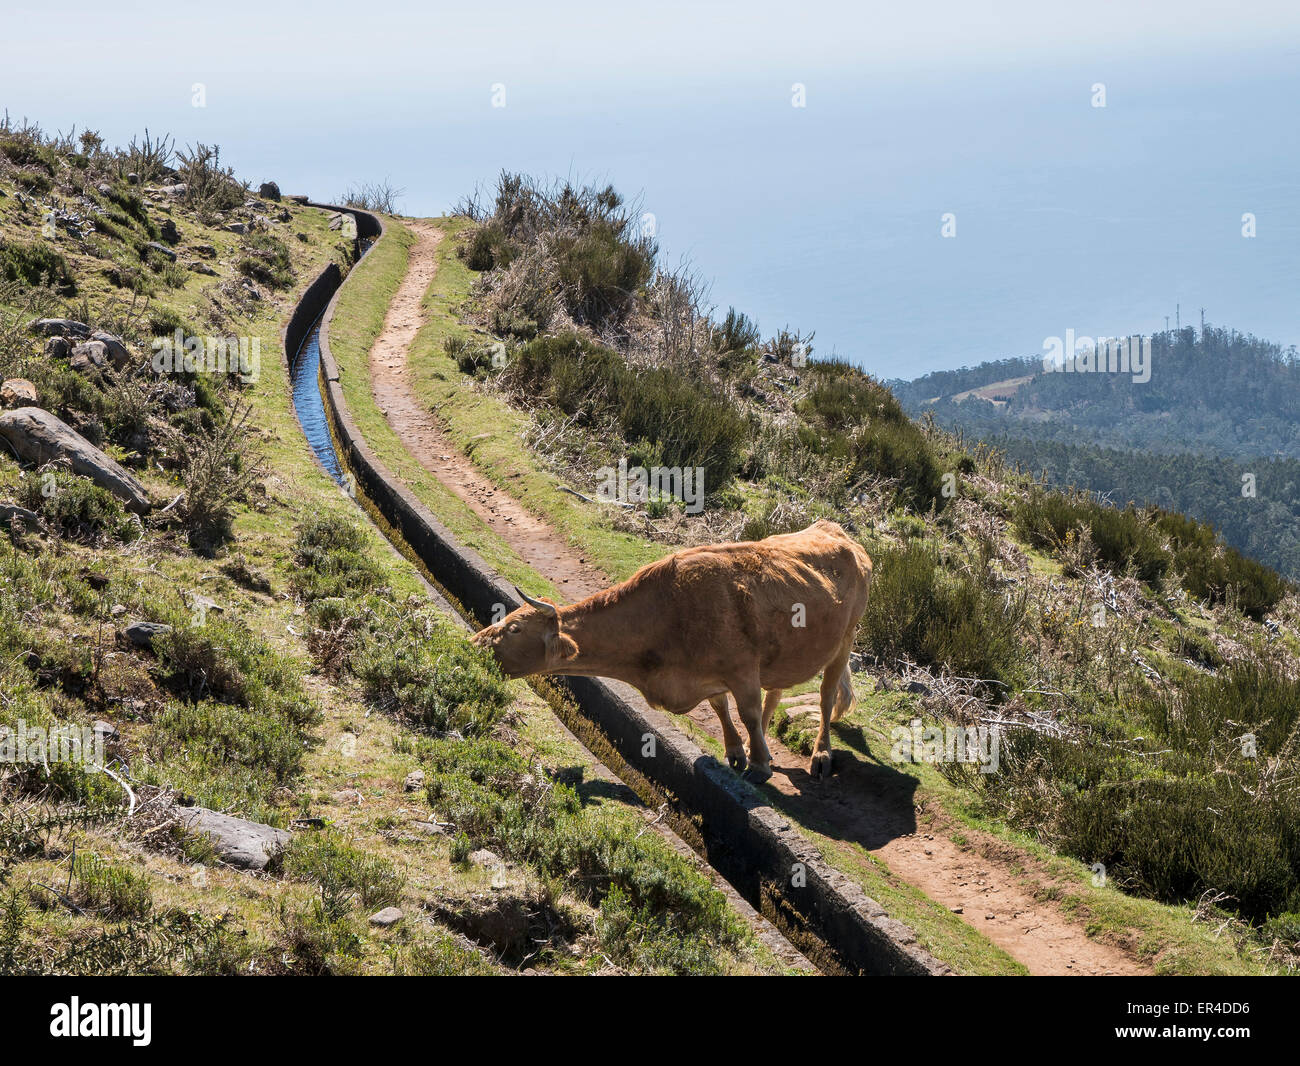 Levada, Central Madeira, Portugal - Stock Image